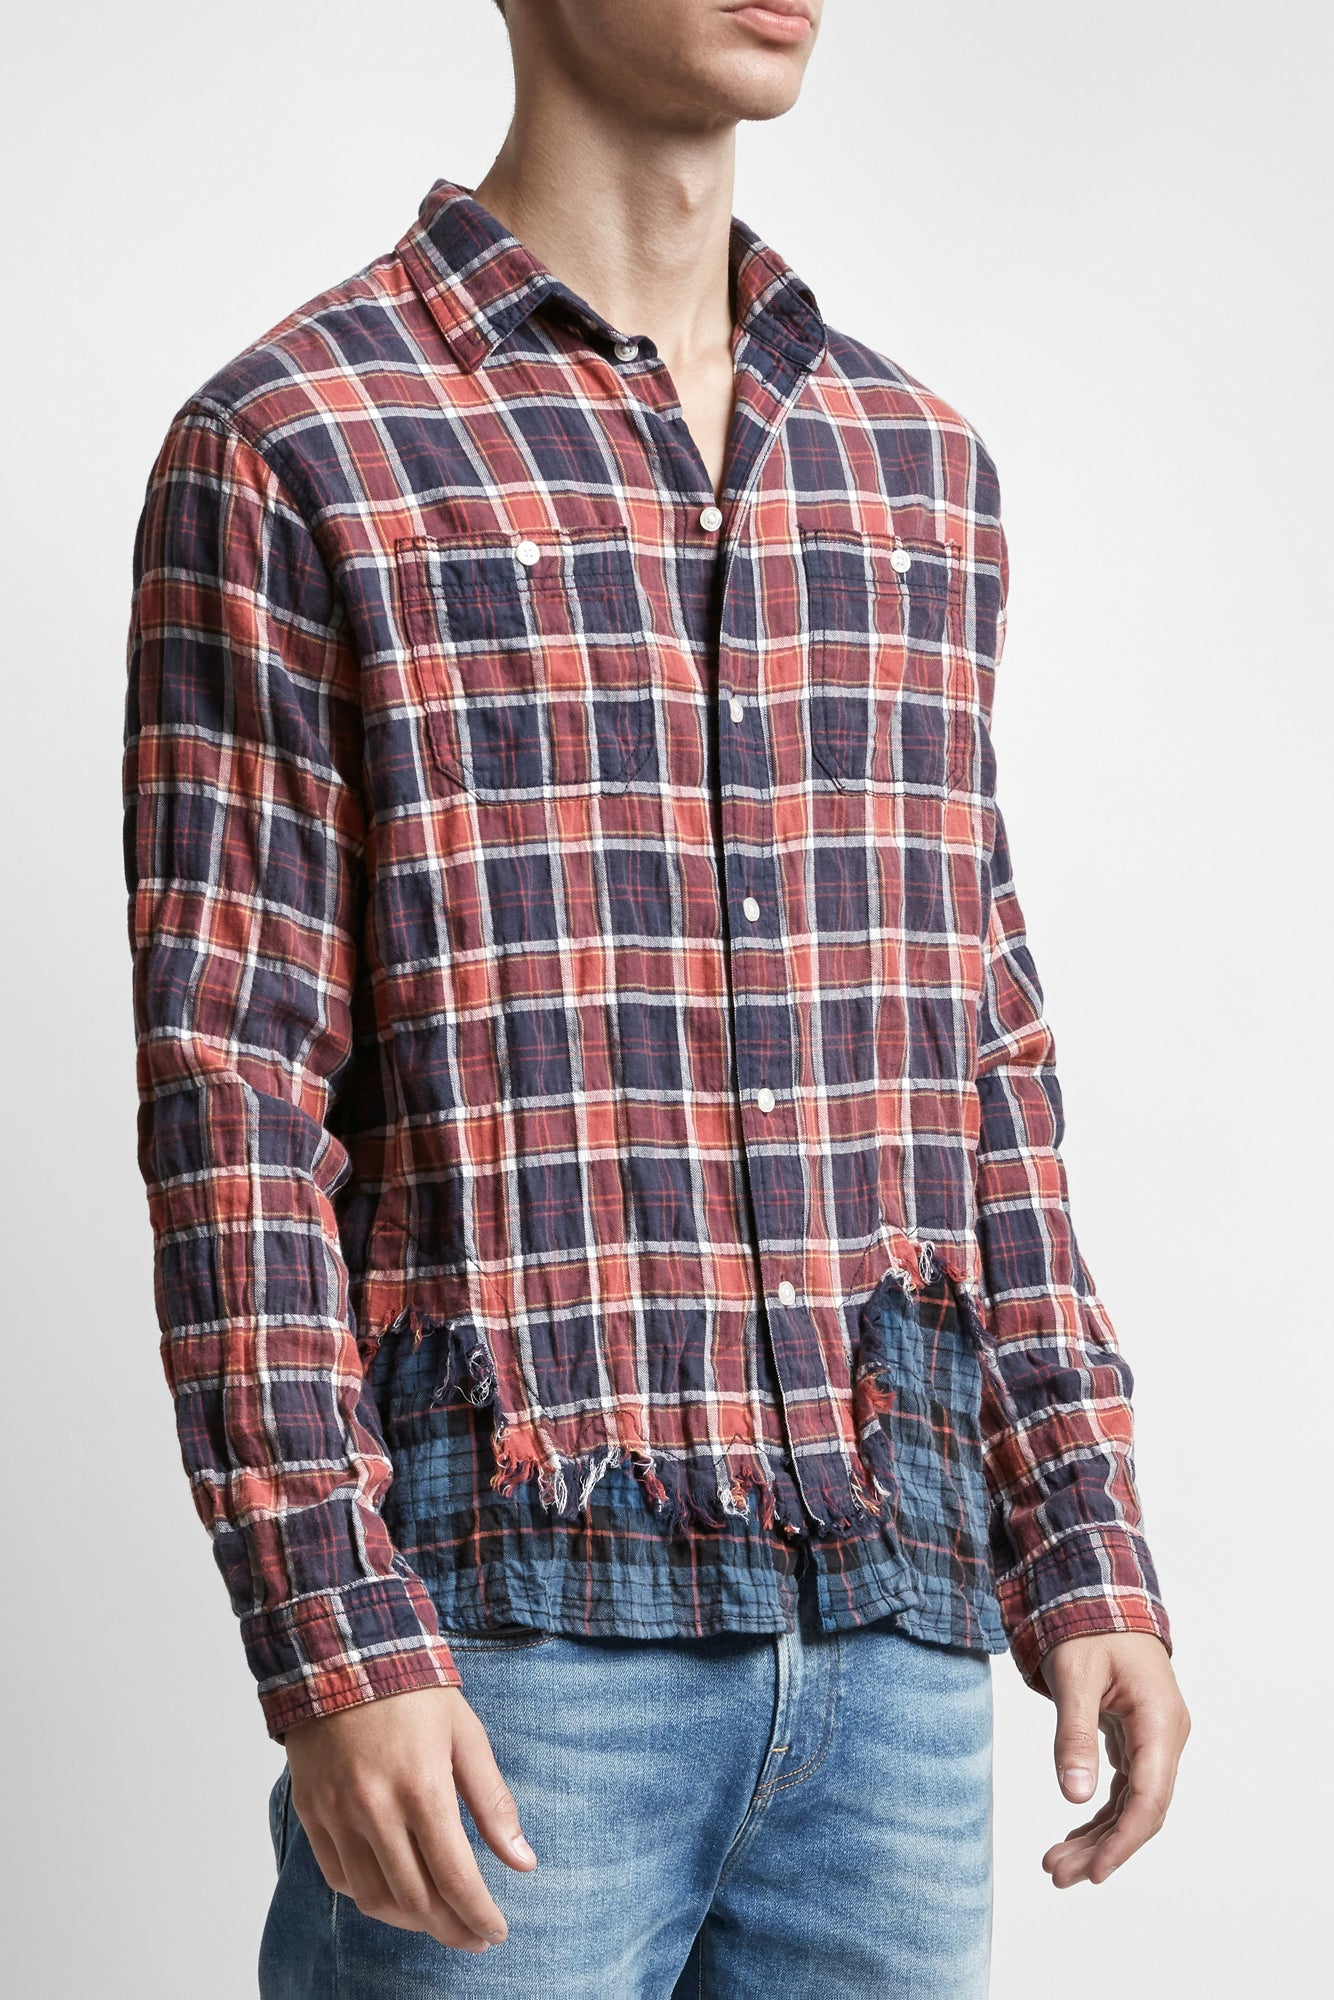 Tattered Hem Shirt - Maroon